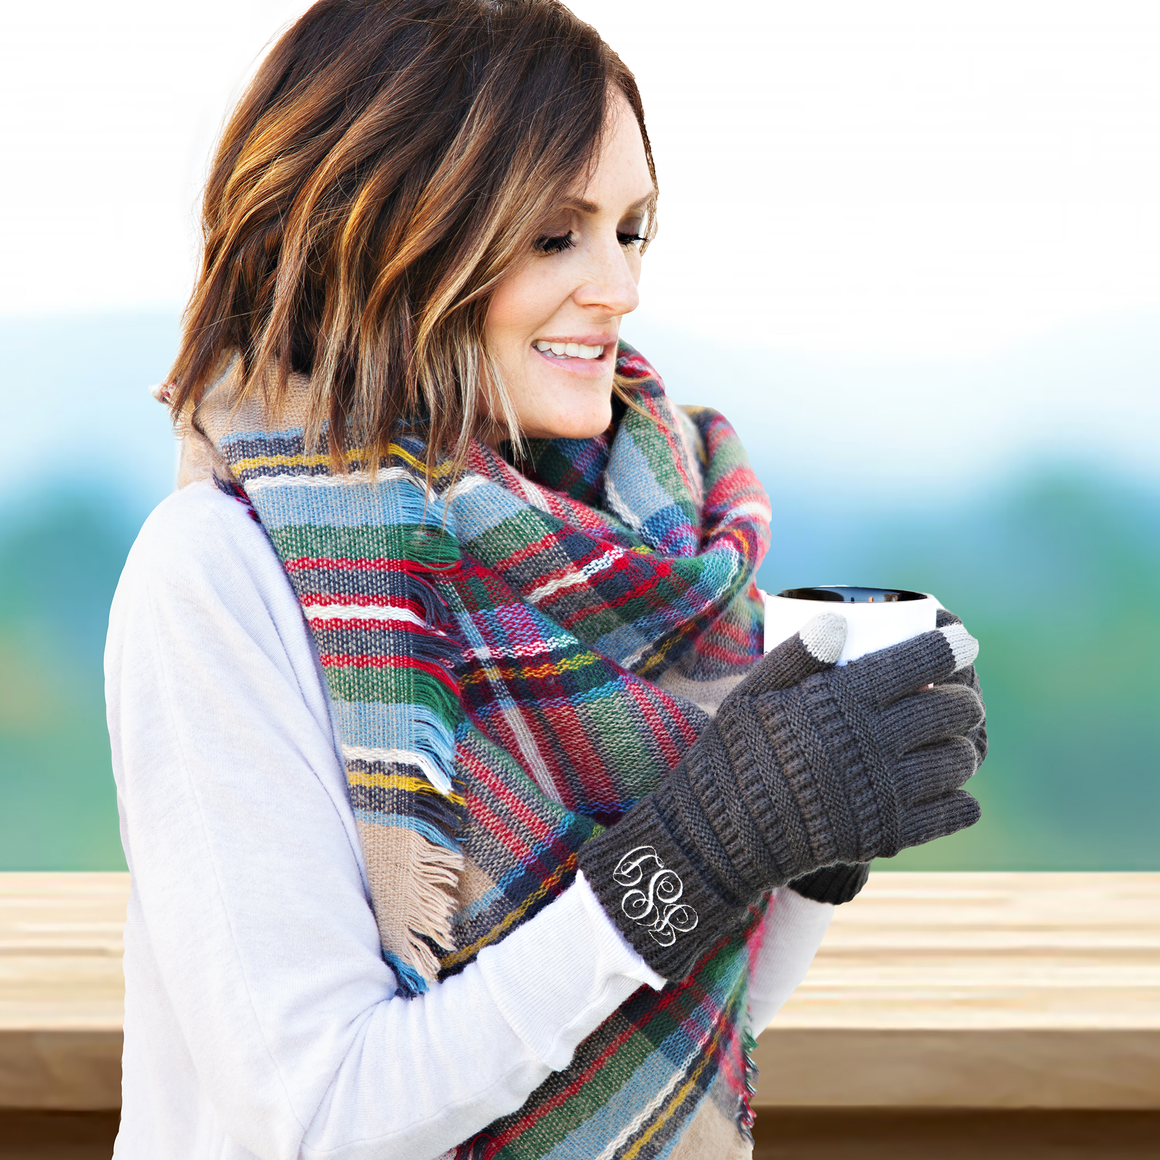 Personalized Monogram Touchscreen Gloves